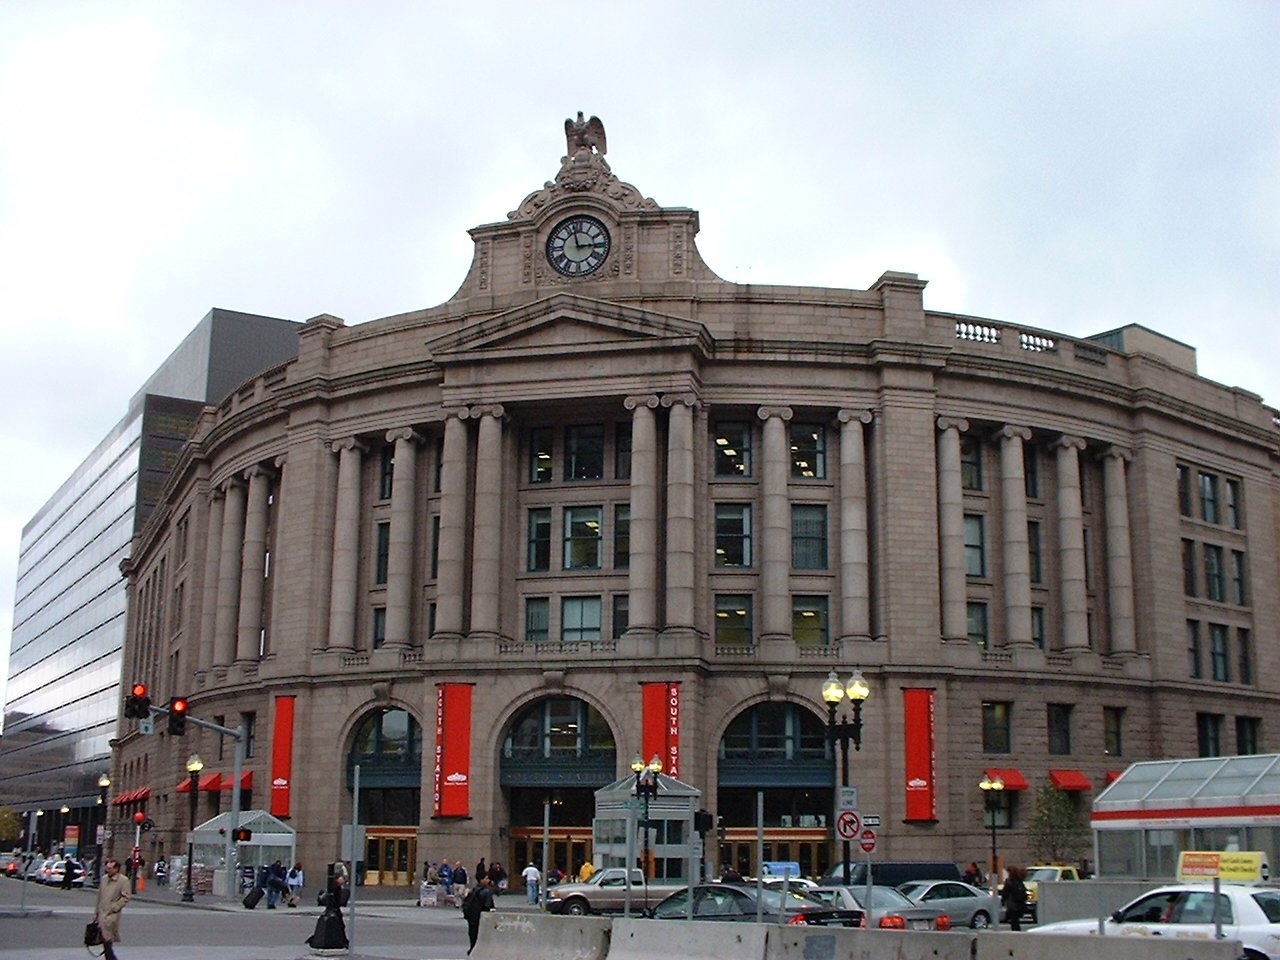 Photo of the front of South Station in Boston, MA. South Station — officially The Governor Michael S. Dukakis Transportation Center at South Station — is the largest railroad station and intercity bus terminal in Greater Boston and New England's second-largest transportation center after Logan International Airport.[4] Located at the intersection of Atlantic Avenue and Summer Street in Dewey Square, Boston, Massachusetts, the historic station building was constructed in 1899 to replace the downtown terminals of several railroads. Today, it serves as a major intermodal domestic transportation hub, with service to the Greater Boston region and the Midwestern and Northeastern United States. It is used by thousands of commuter rail and intercity rail passengers daily. Connections to the rapid transit Red Line and Silver Line are made through the adjacent subway station.